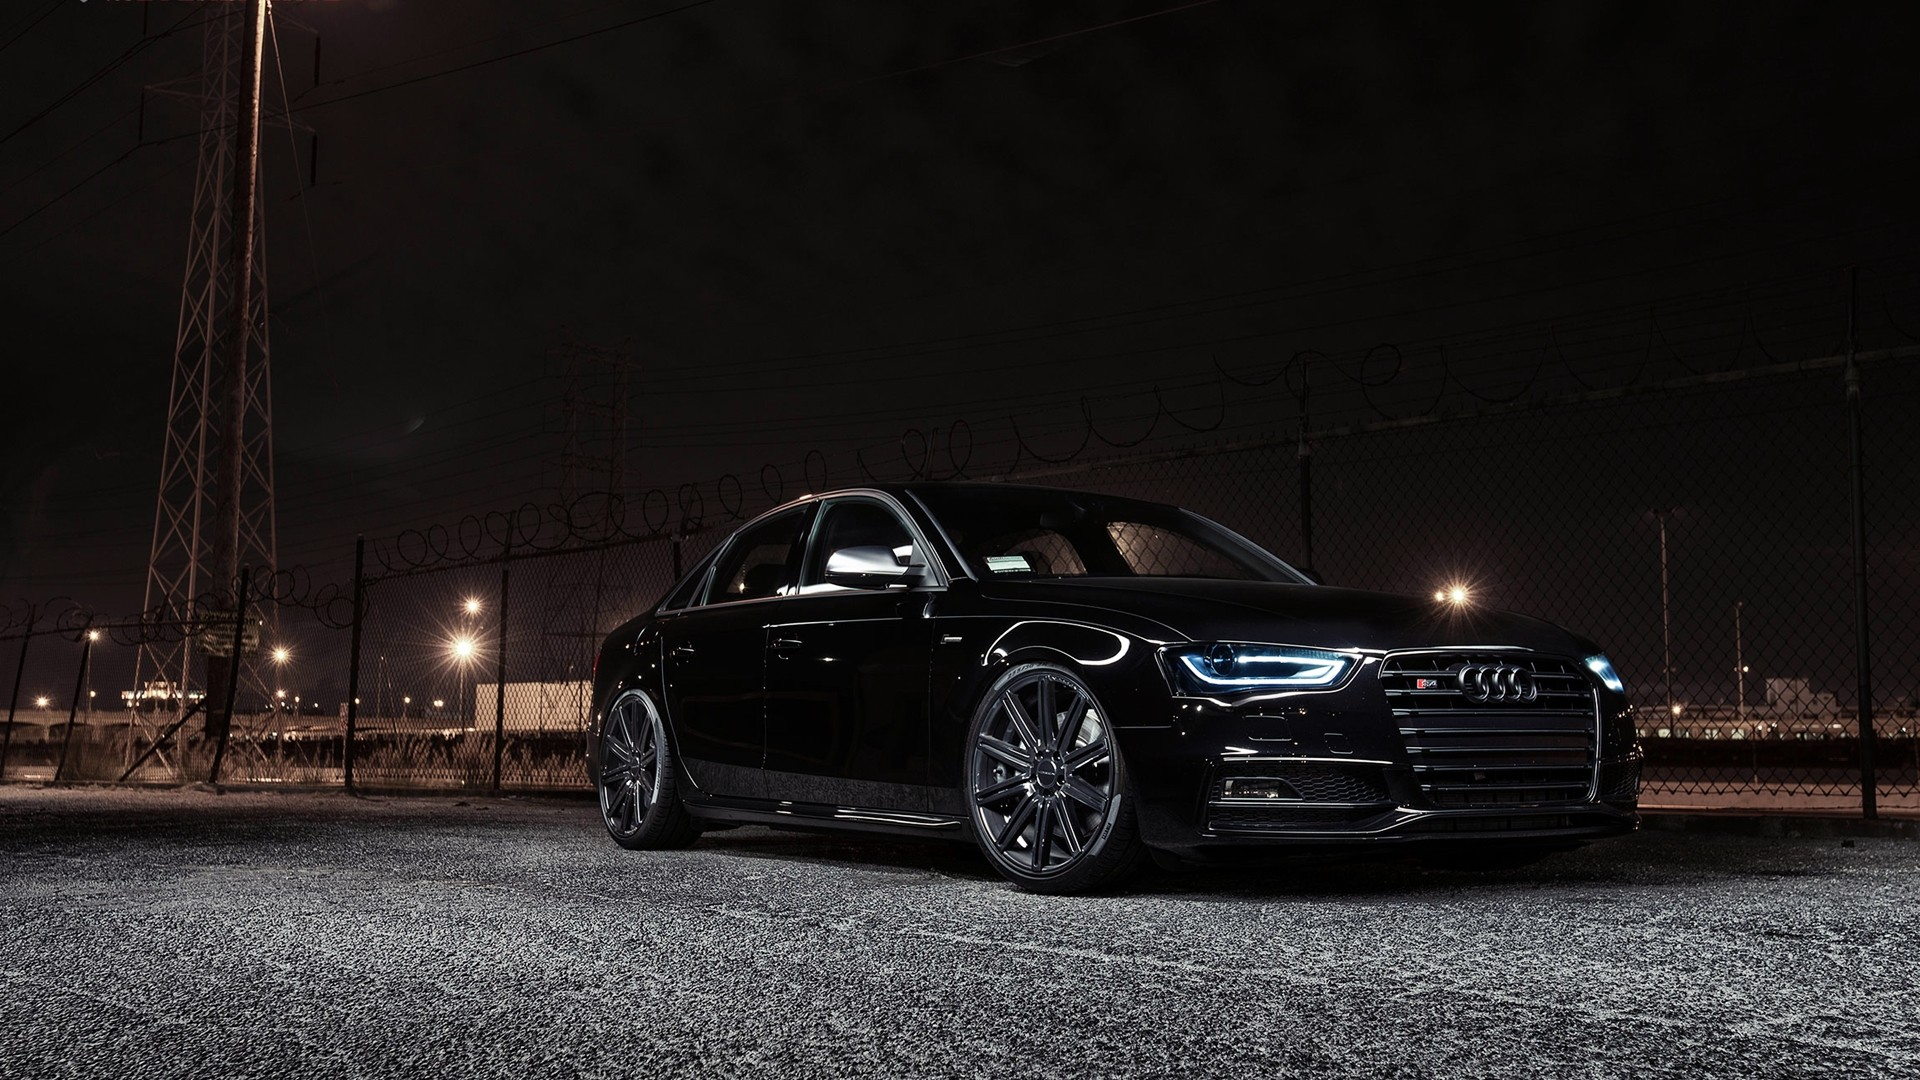 Black Audi Backgrounds